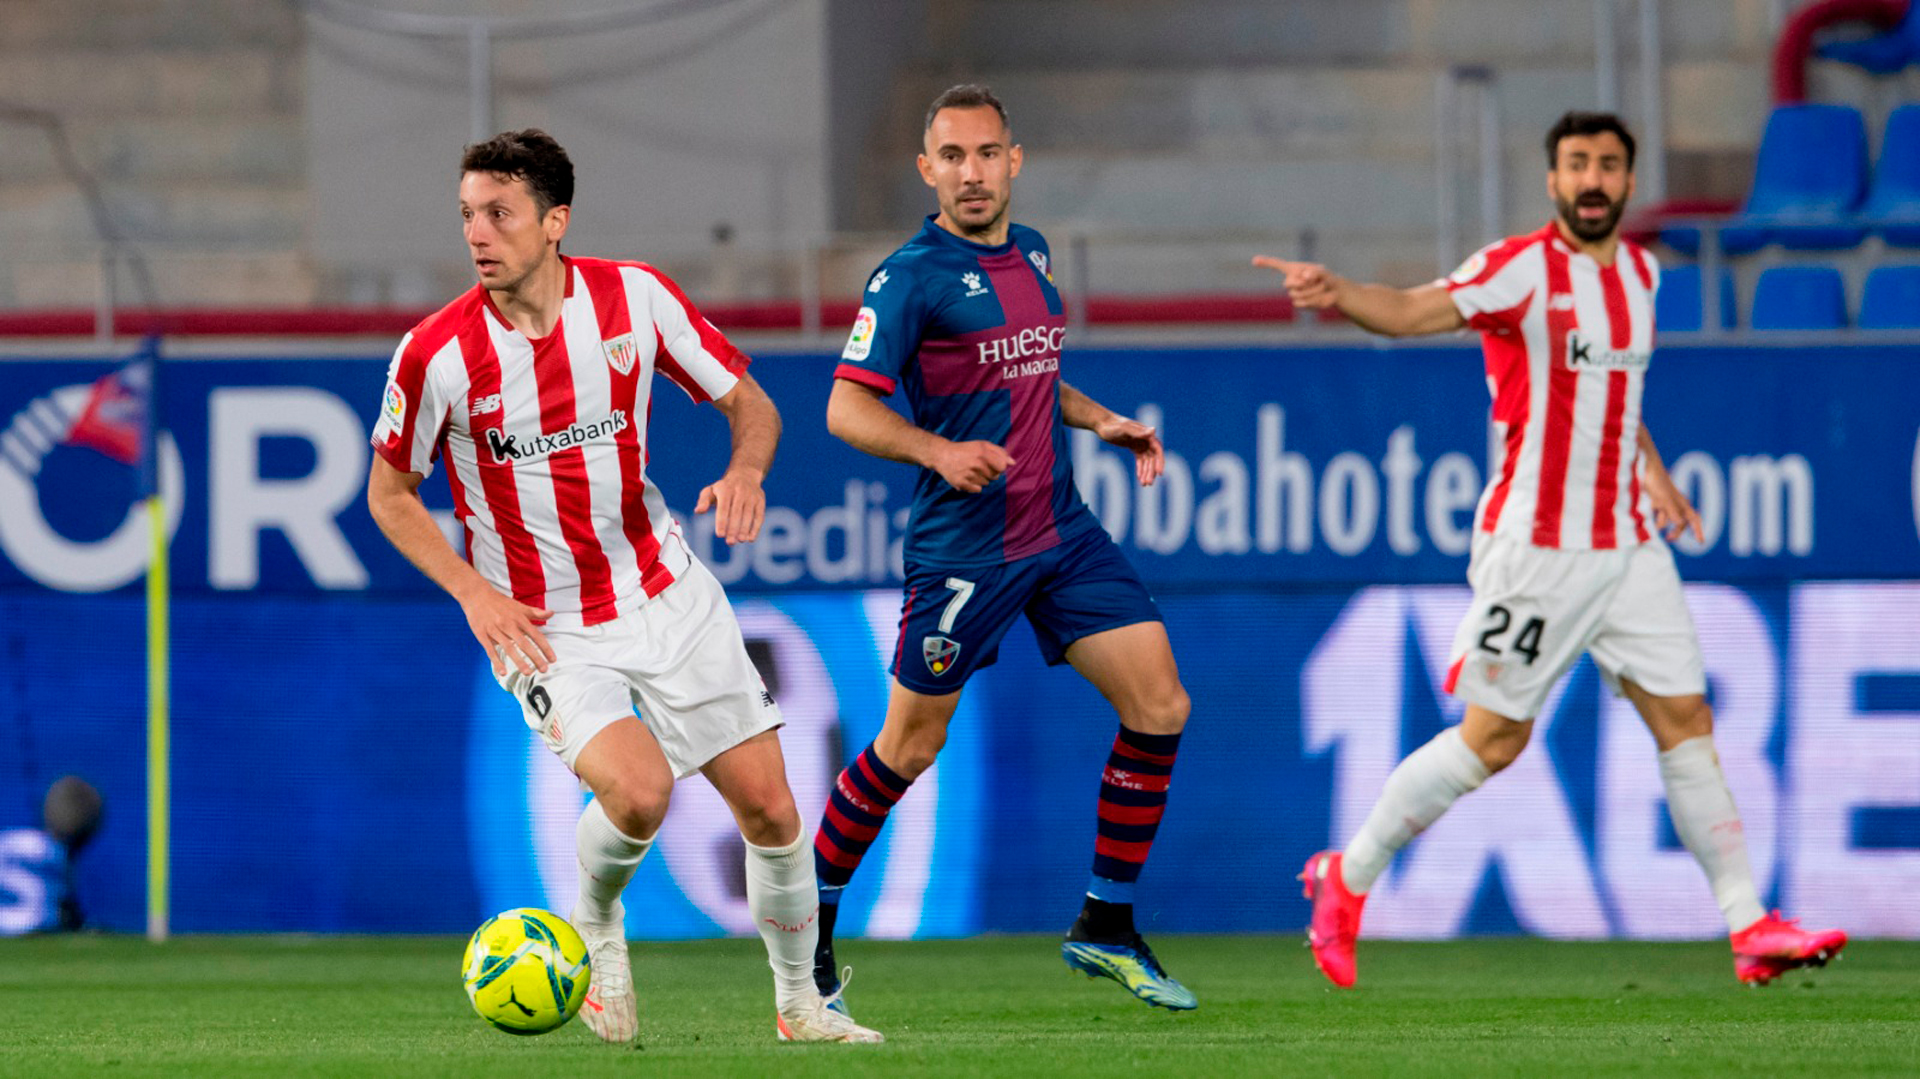 Defeat against SD Huesca